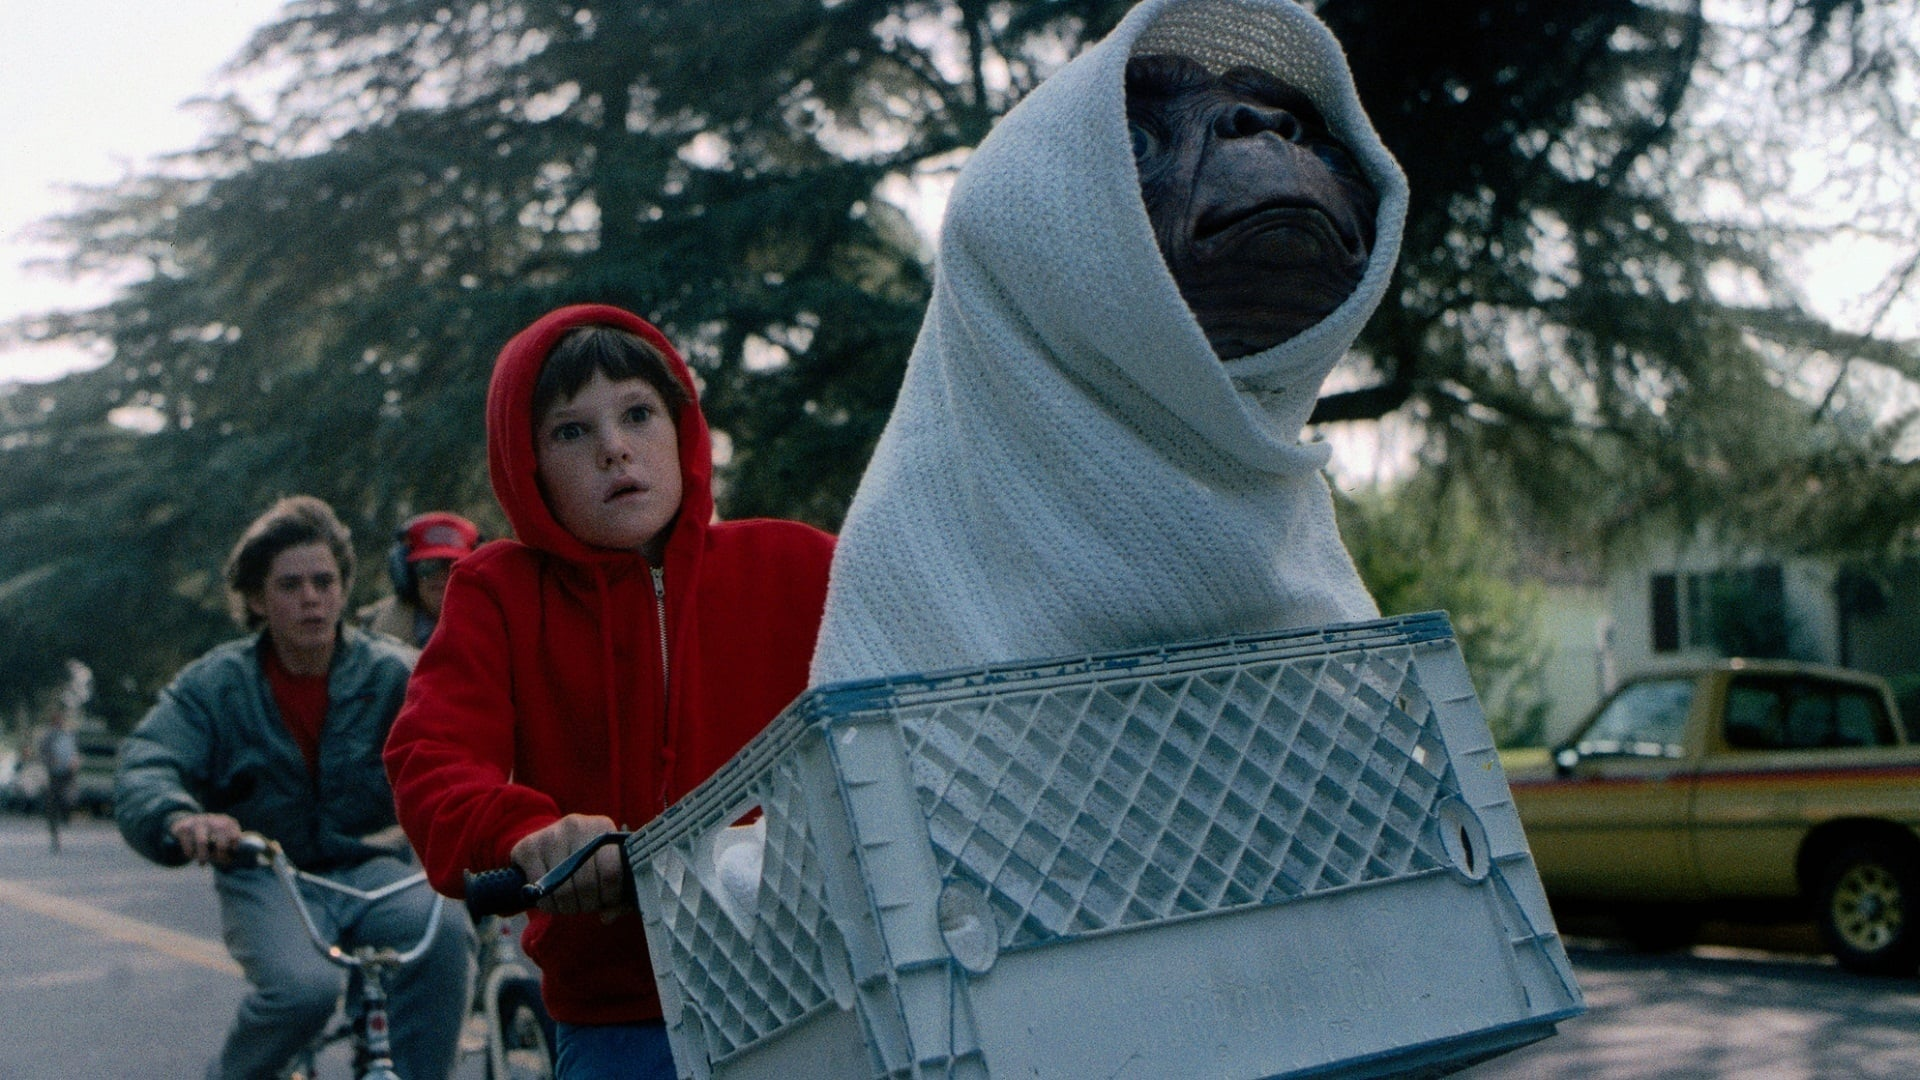 E.T. The Extra-Terrestrial backdrop